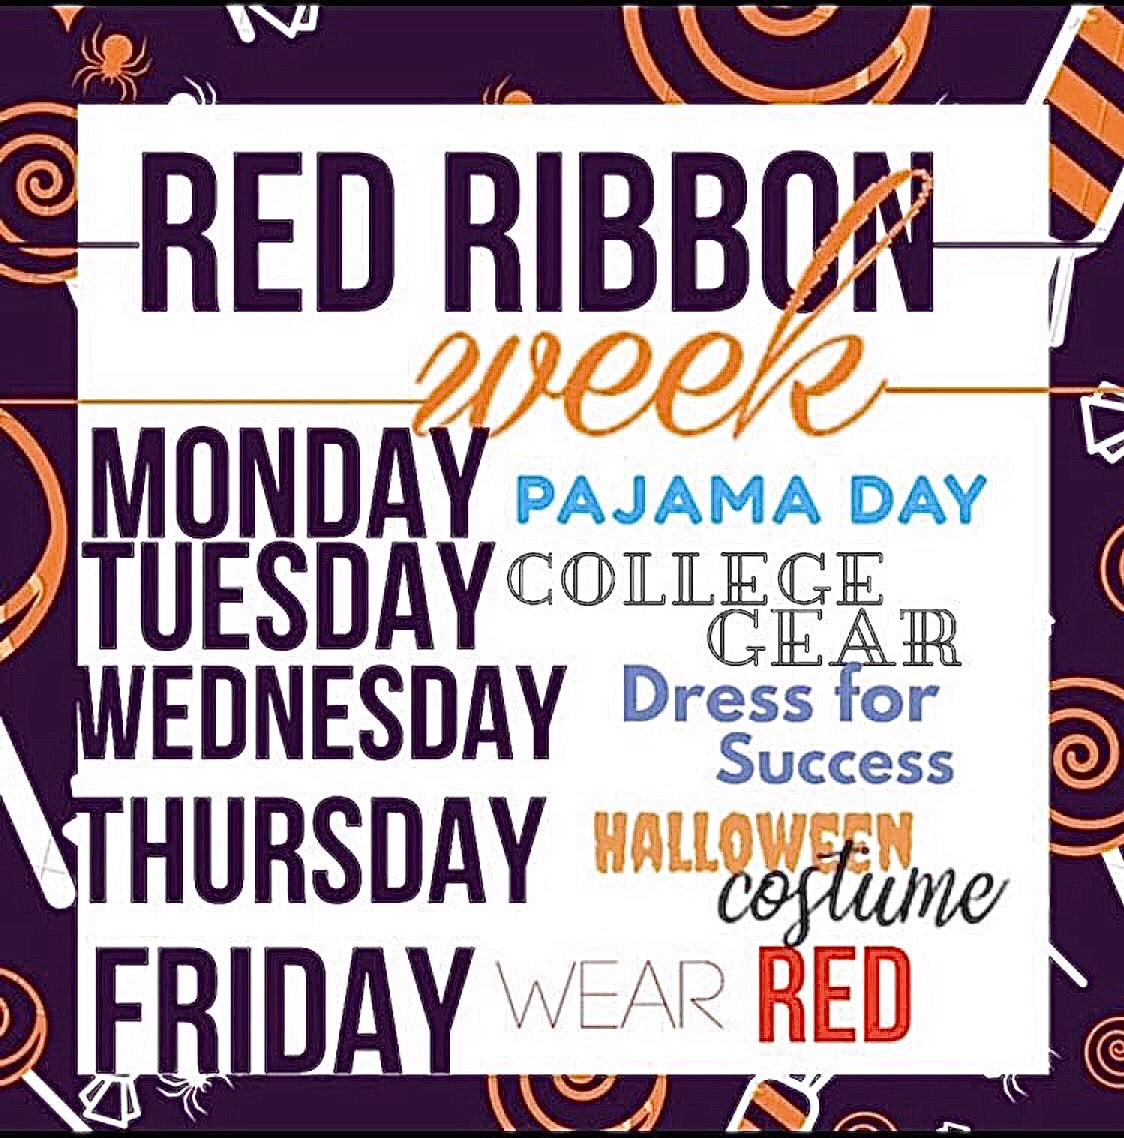 All of the dress up days for Red Ribbon Week.